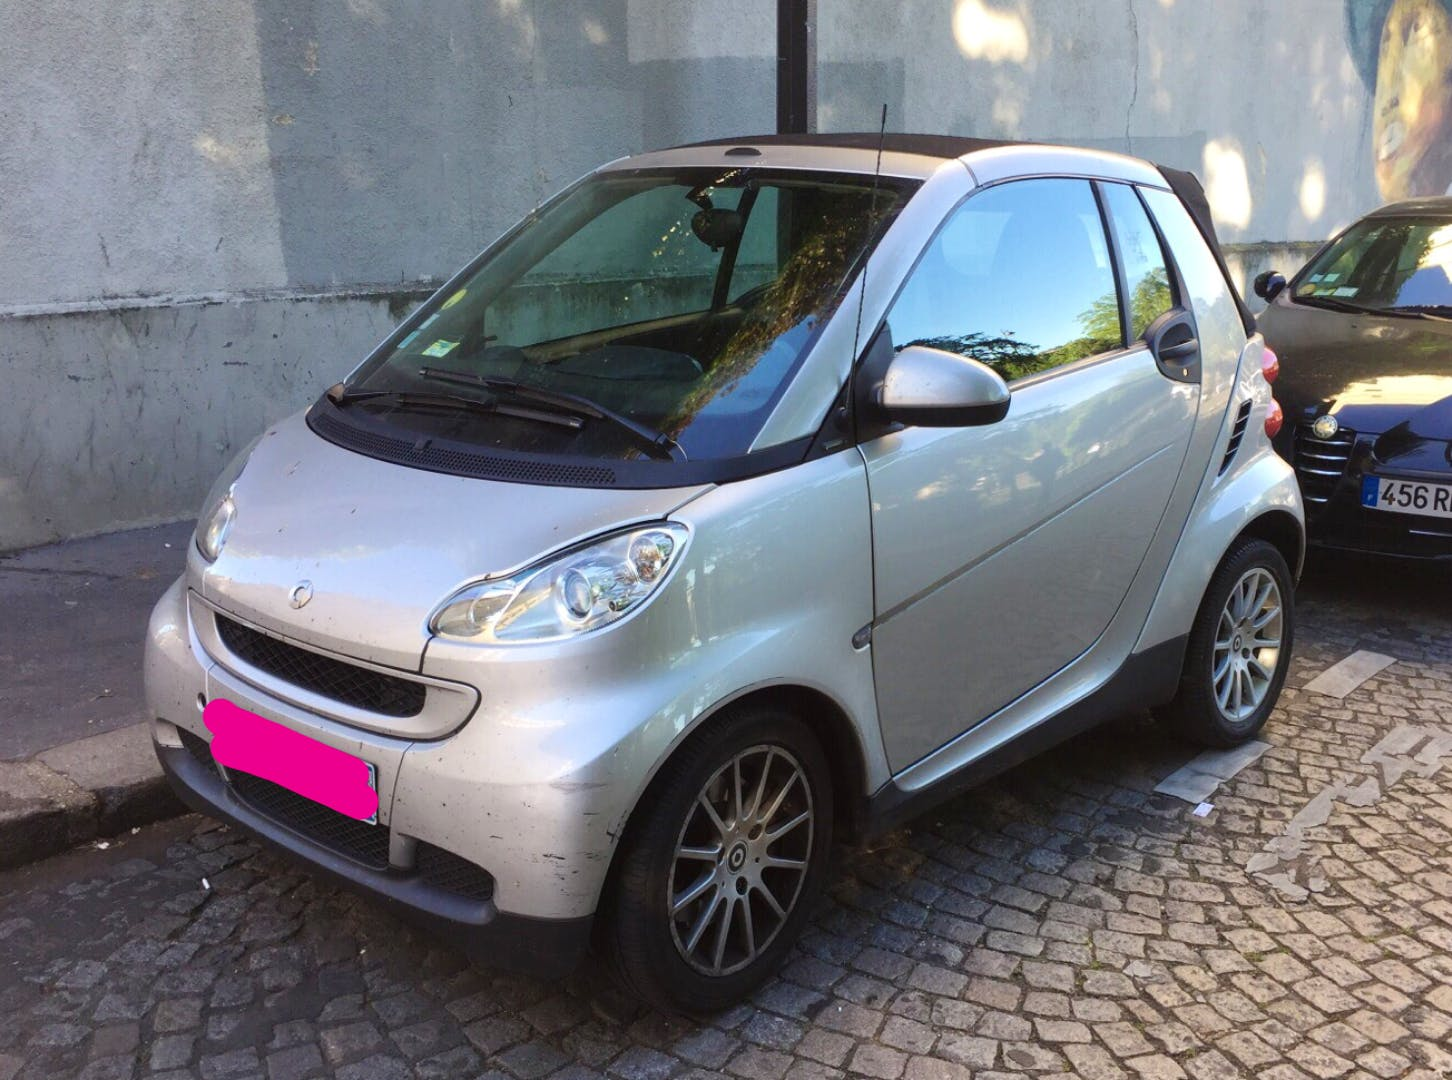 Smart Fortwo Cabriolet 71ch Passion (clim, Jack,...) PARIS 13 - SAINT JACQUES #aq, 2009, Essence, automatique